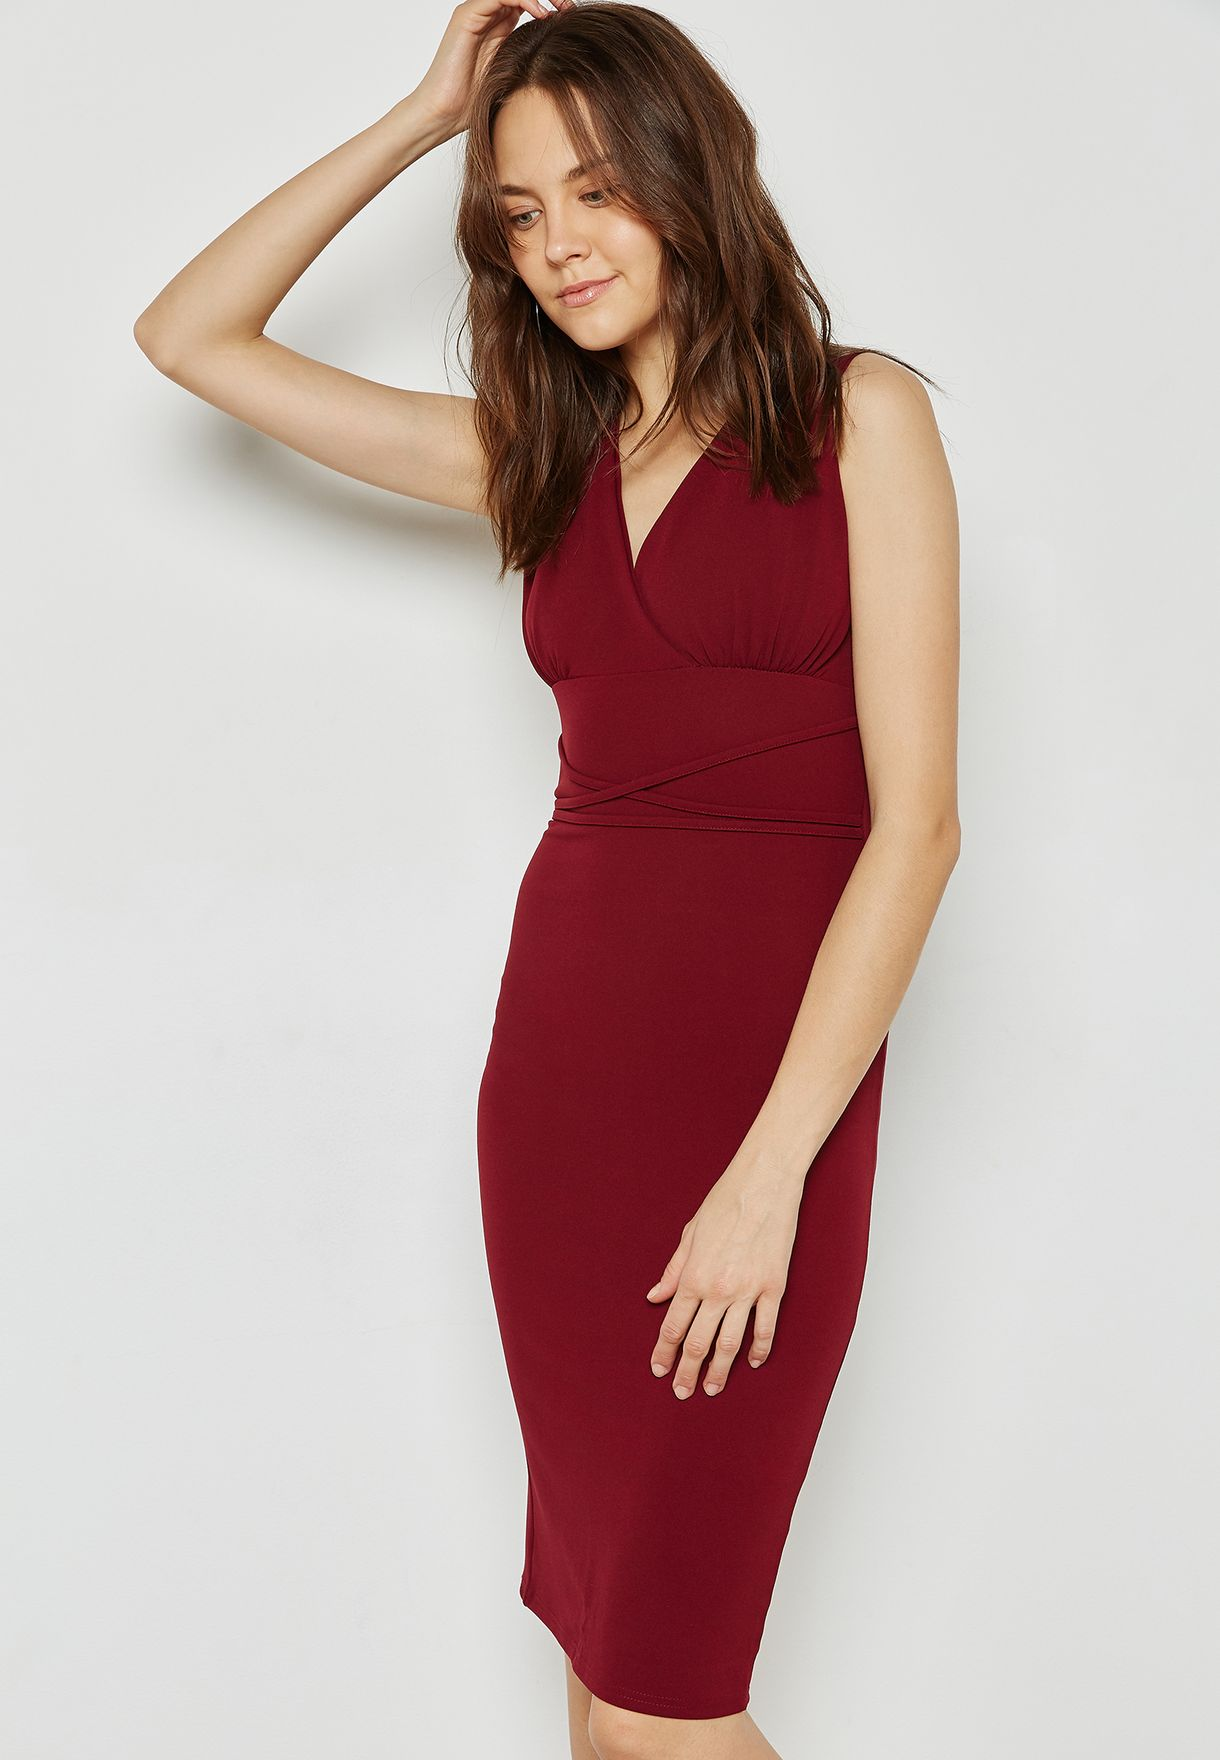 12412e654 Shop Ella burgundy Scuba Wrap Front Detail Waist Dress CR2417 for ...